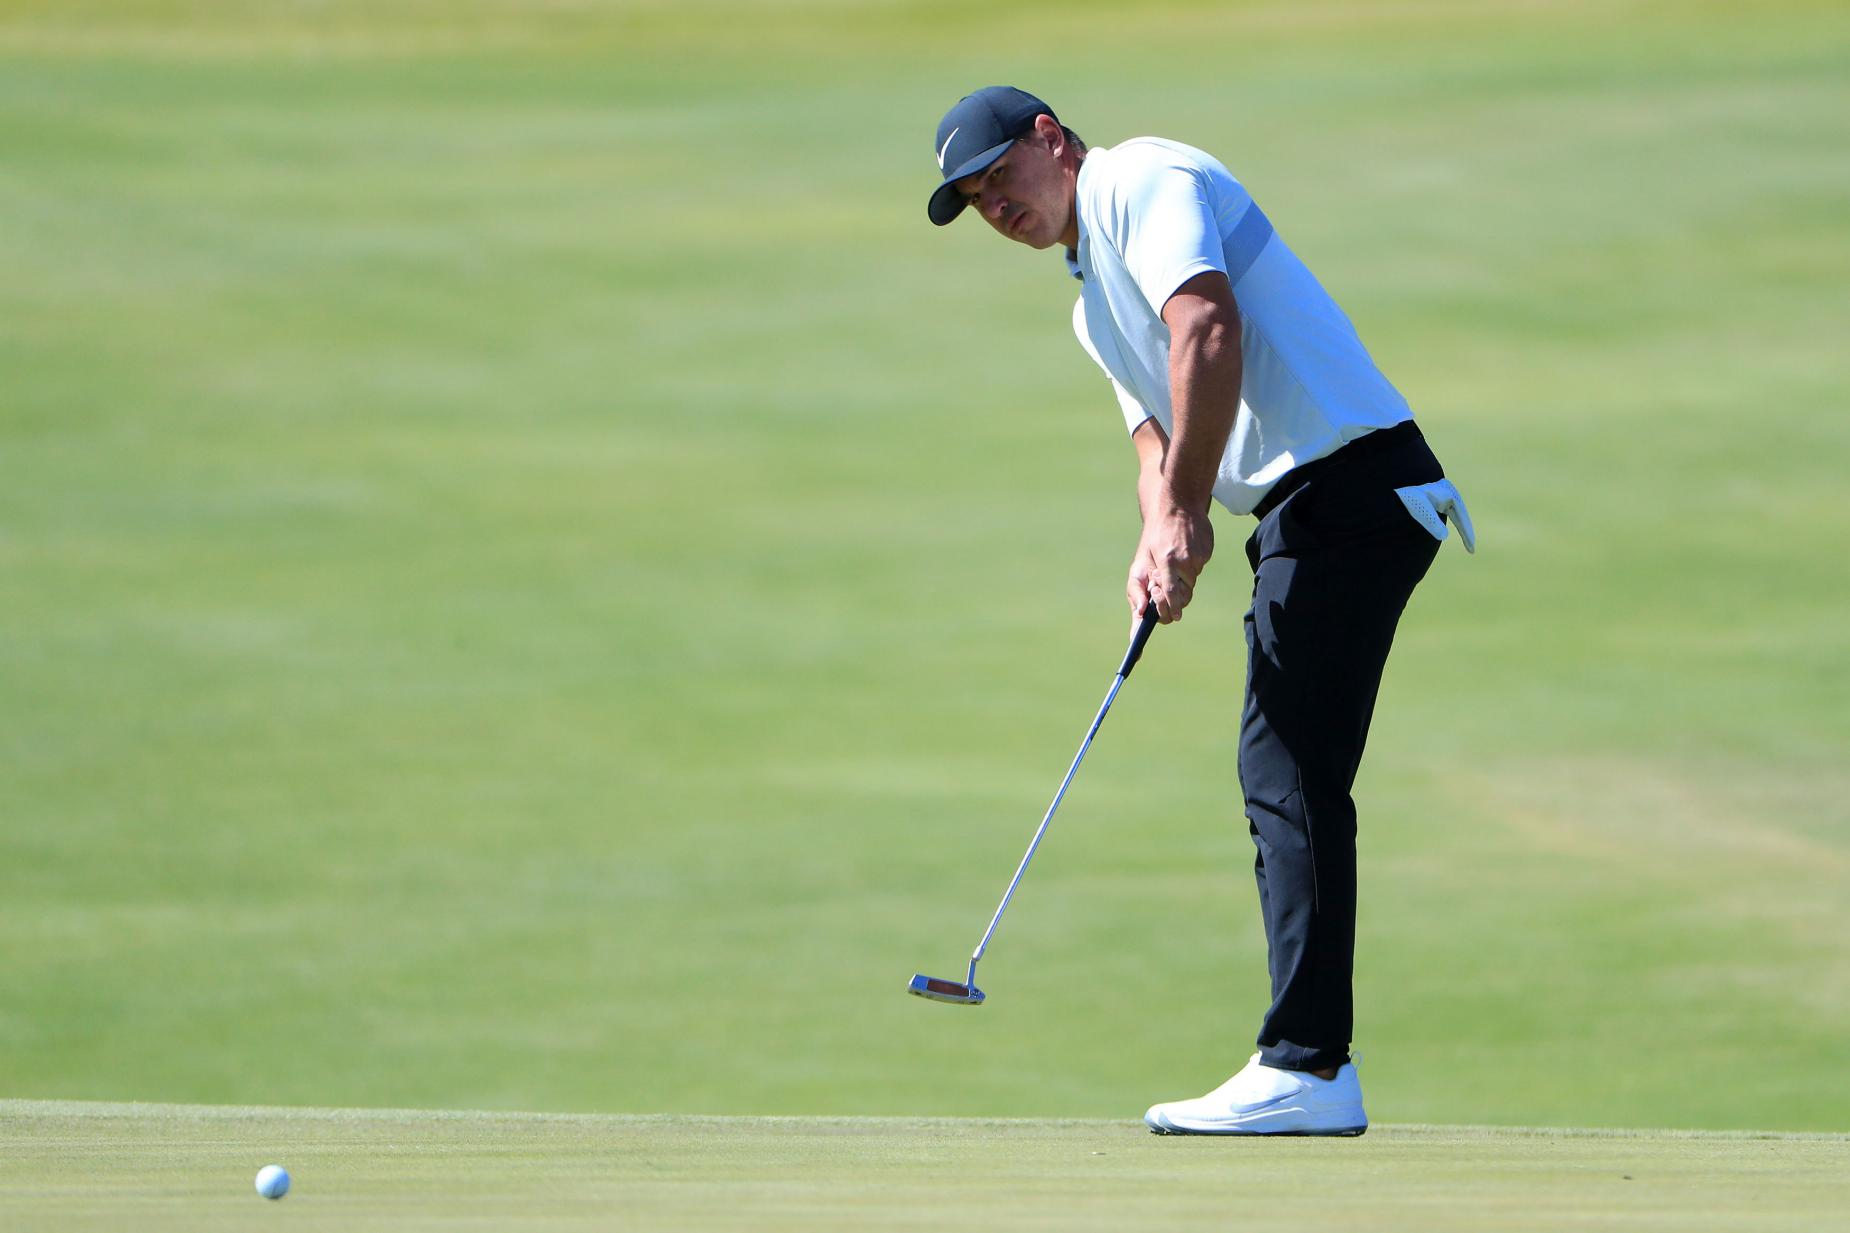 brooks-koepka-shriners-2019-putting.jpg